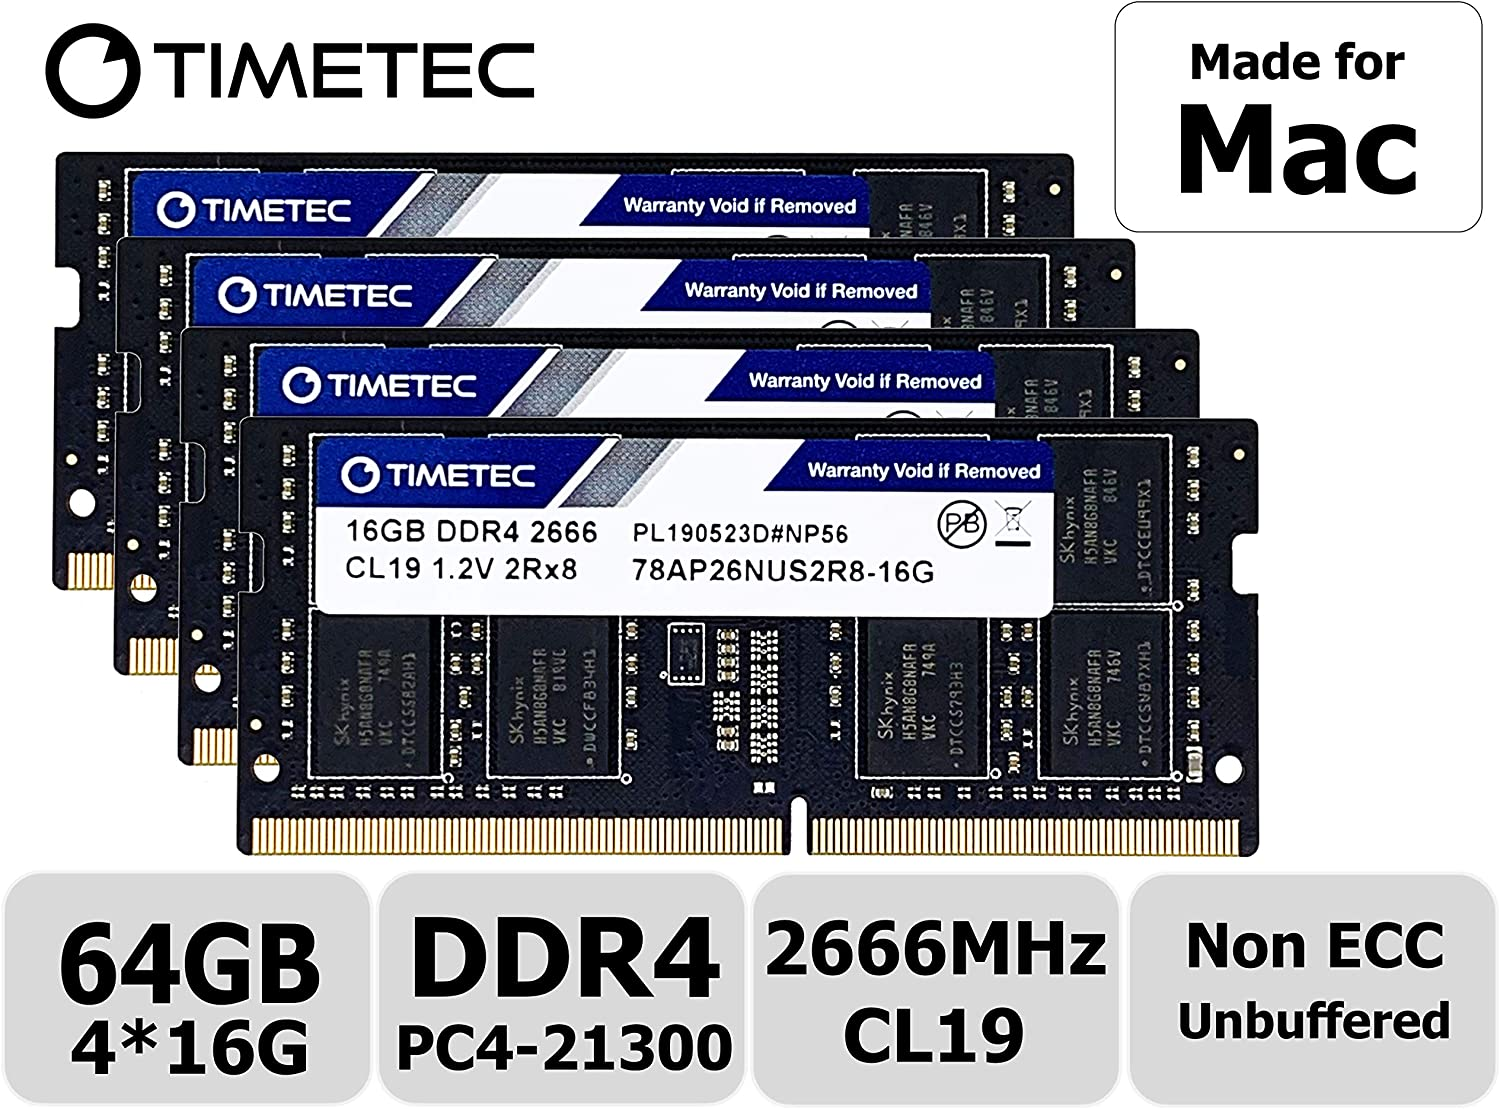 Timetec Hynix IC 64GB KIT(4x16GB) Compatible for Apple DDR4 2666MHz for Mid 2020 iMac (20,1/20,2) / Mid 2019 iMac (19,1) 27-inch w/Retina 5K Display PC4-21300 / PC4-21333 CL19 SODIMM Memory MAC RAM